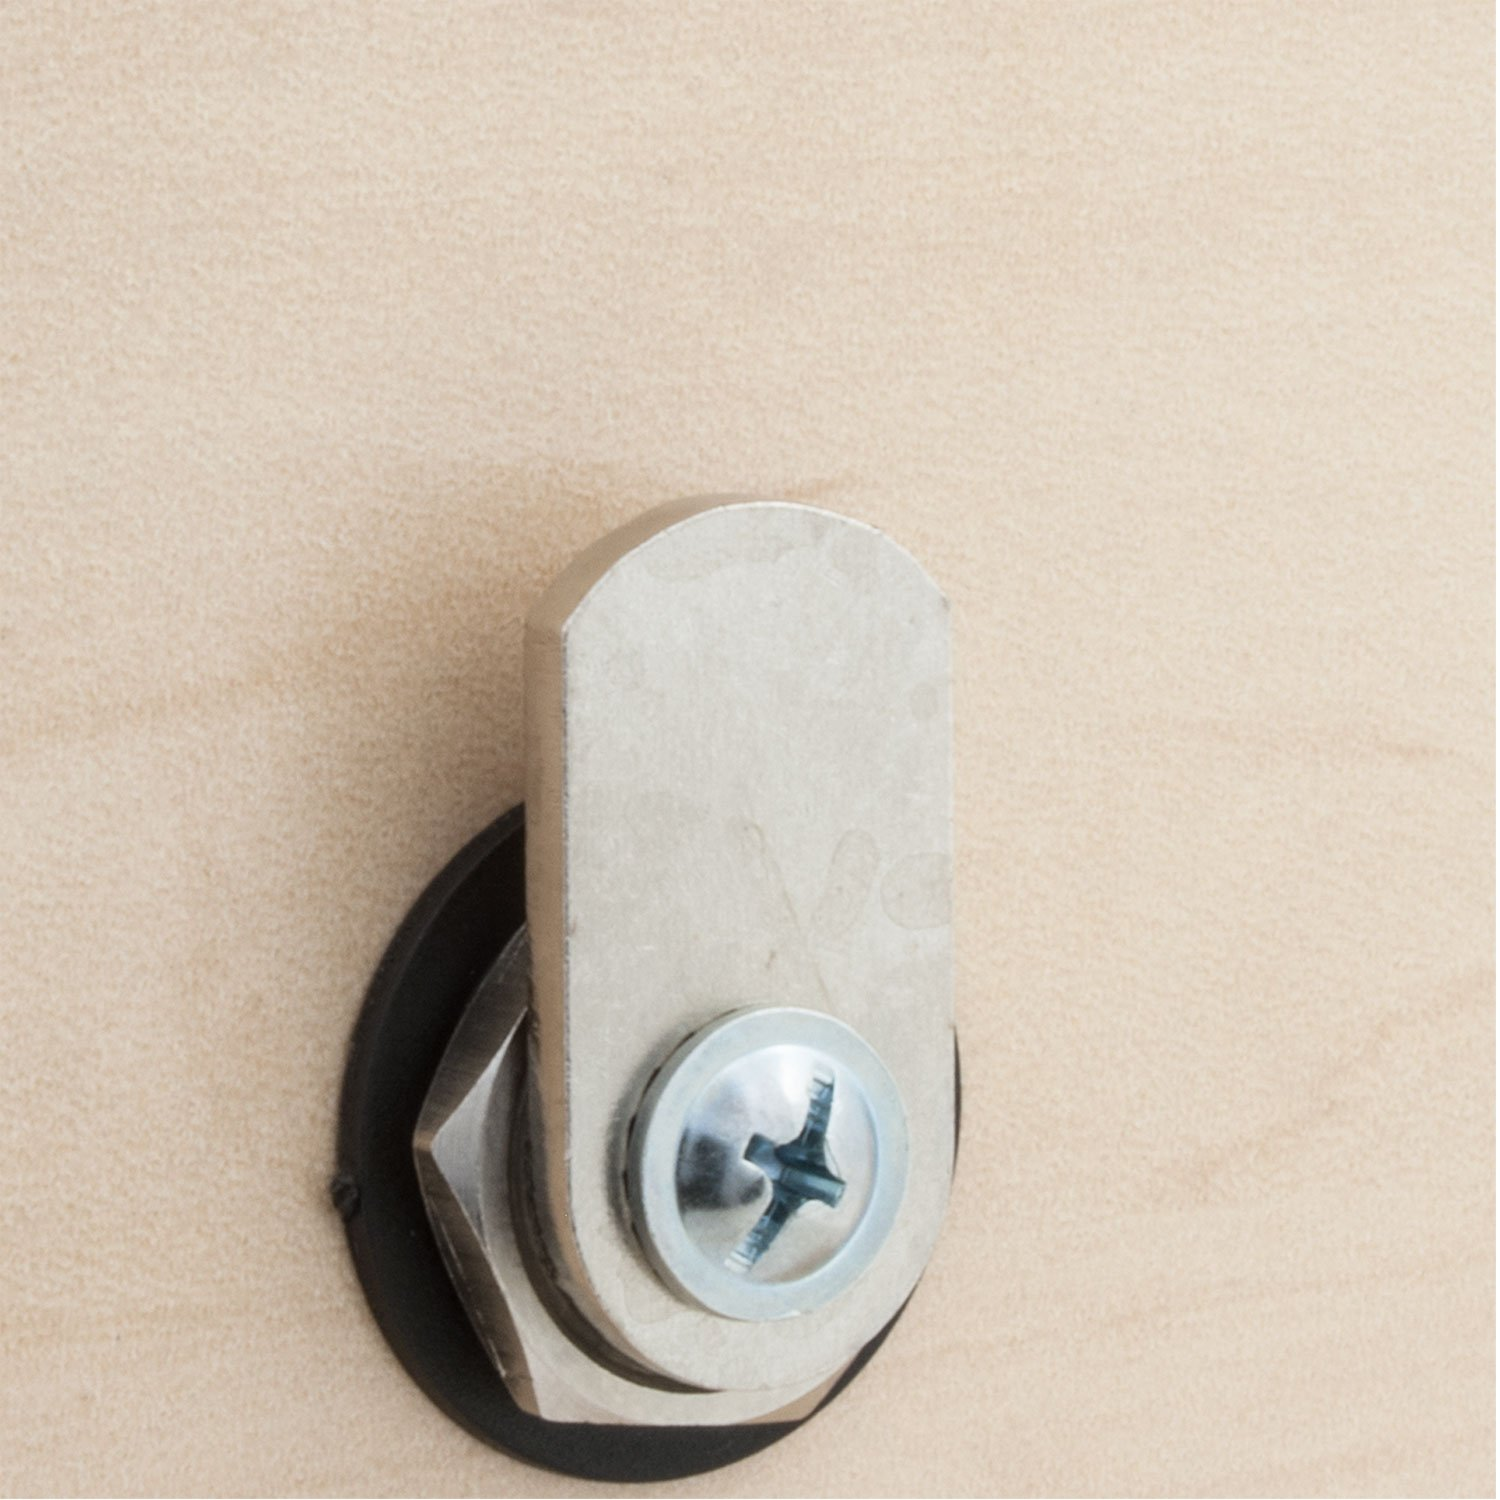 FJM Security Products 7910-K10-HRH-WHT Combi Cam E Electronic Cabinet Lock, White by FJM Security (Image #7)